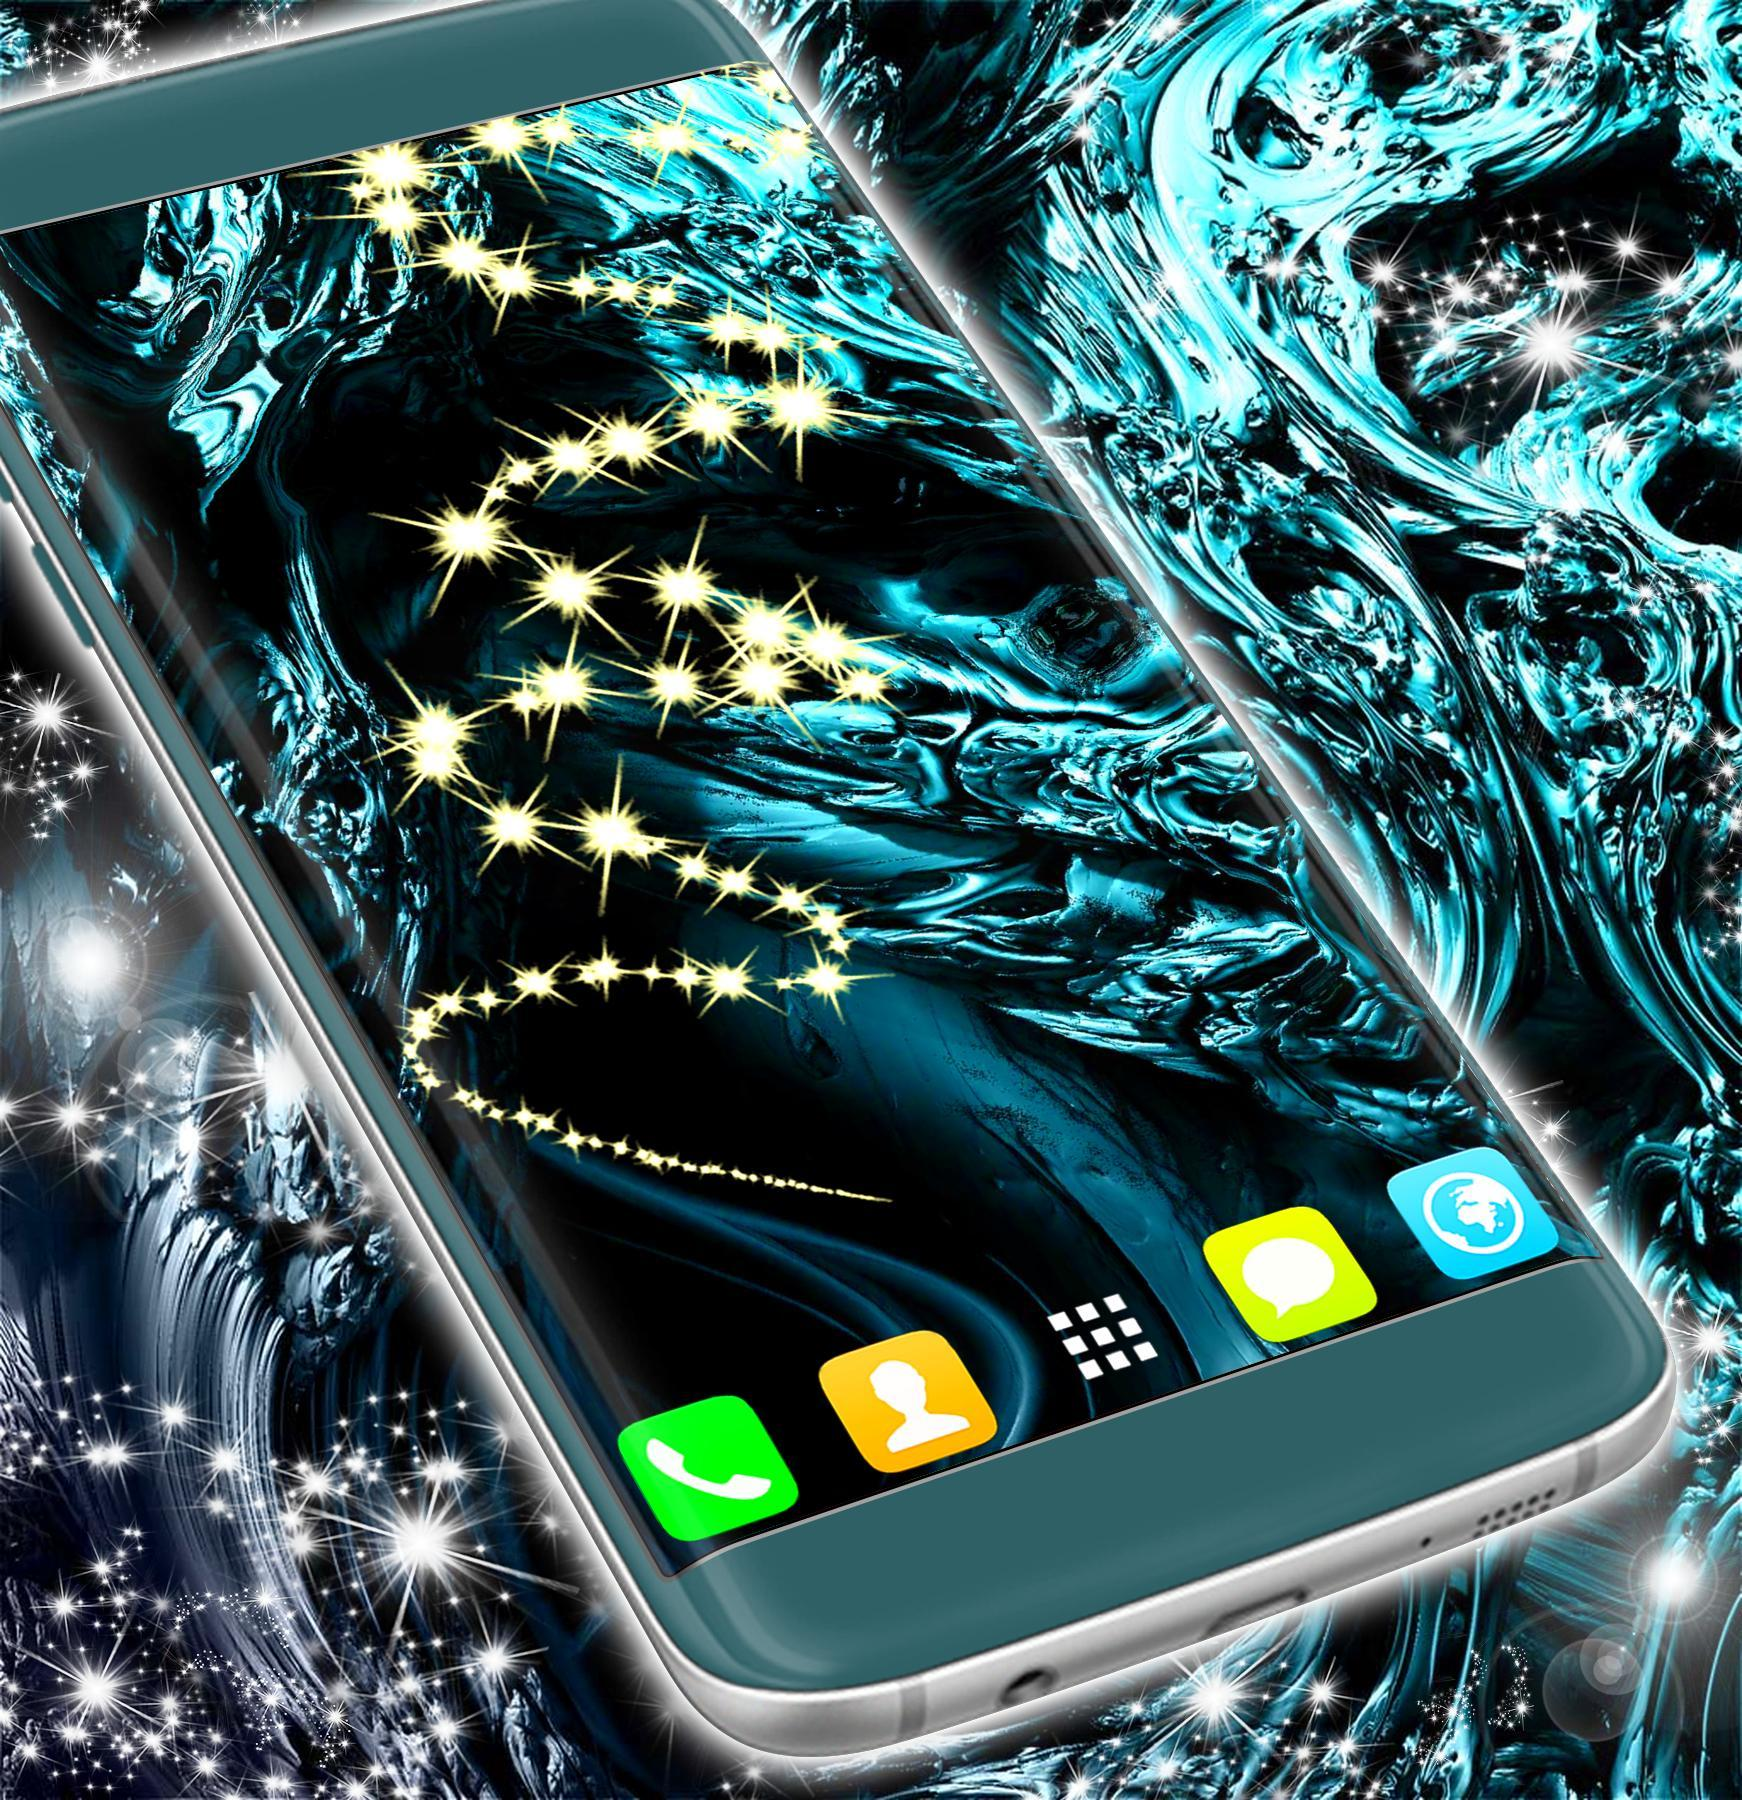 Real Water Live Wallpaper For Android APK Download